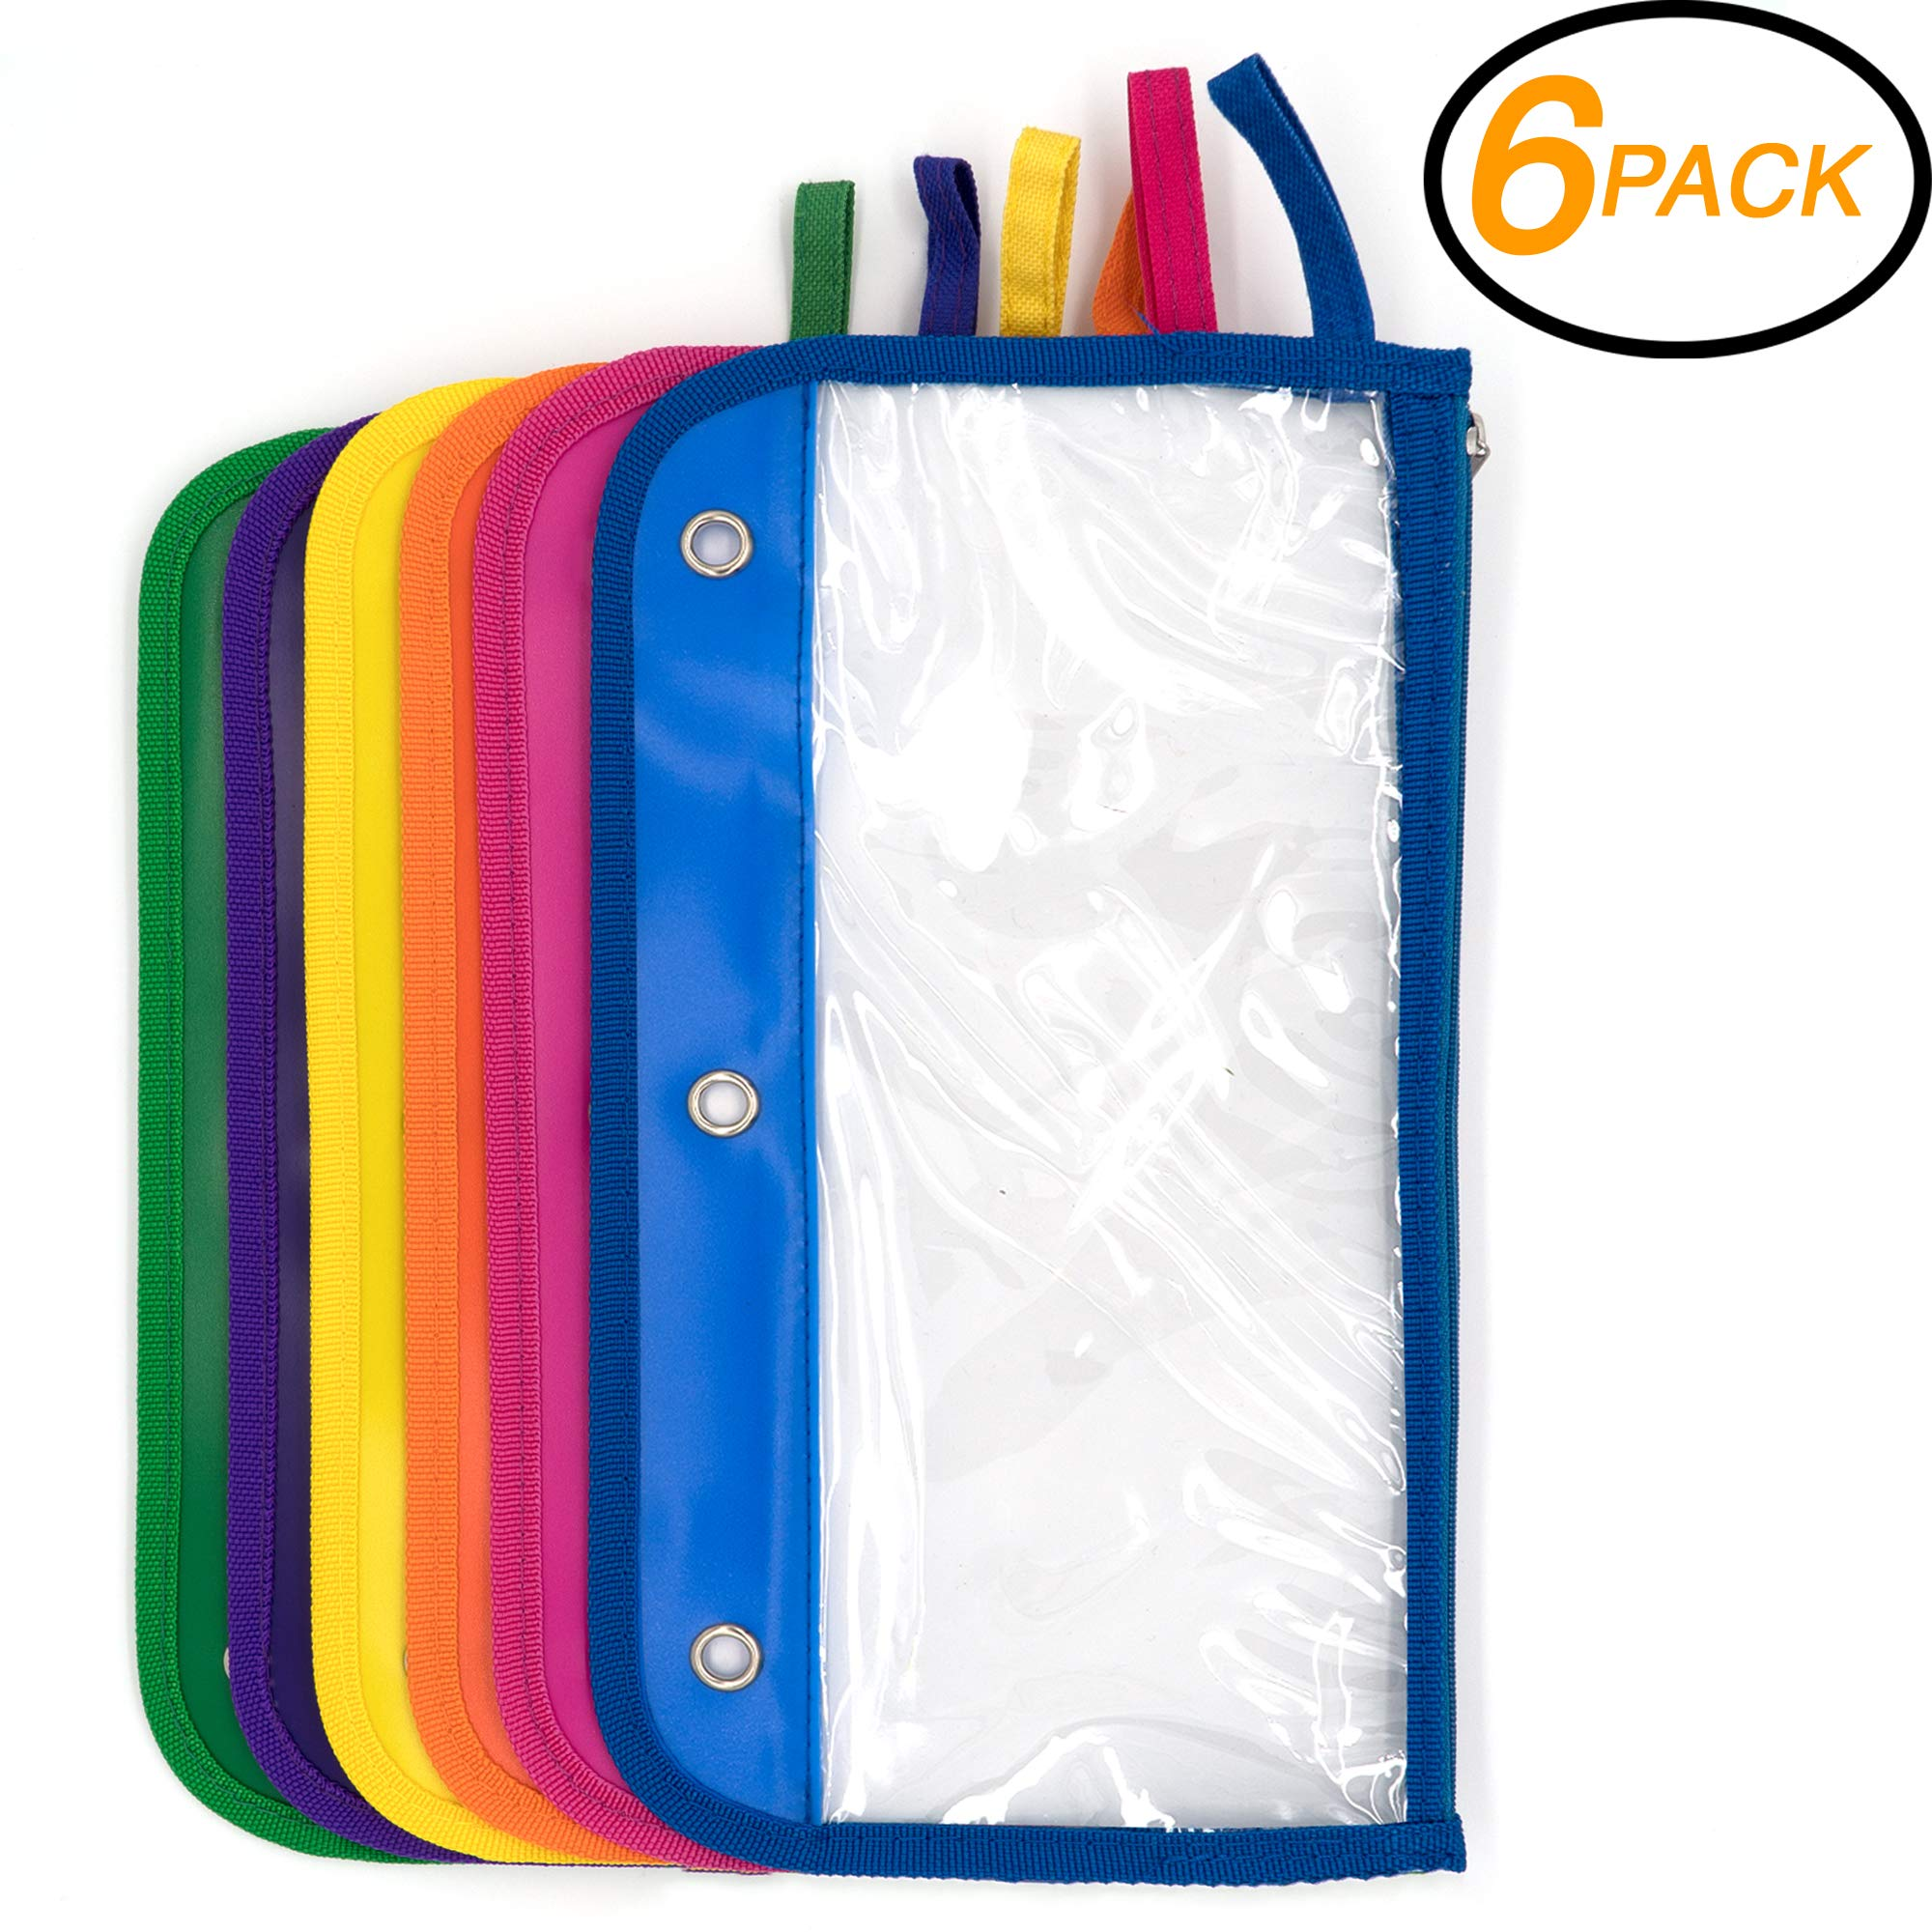 Emraw Zipper Pencil Pouch with 3-Ring Grommet Holes - Pencil case with Clear Window for Binder & Zipper Pouch (6-Pack) by Emraw (Image #1)